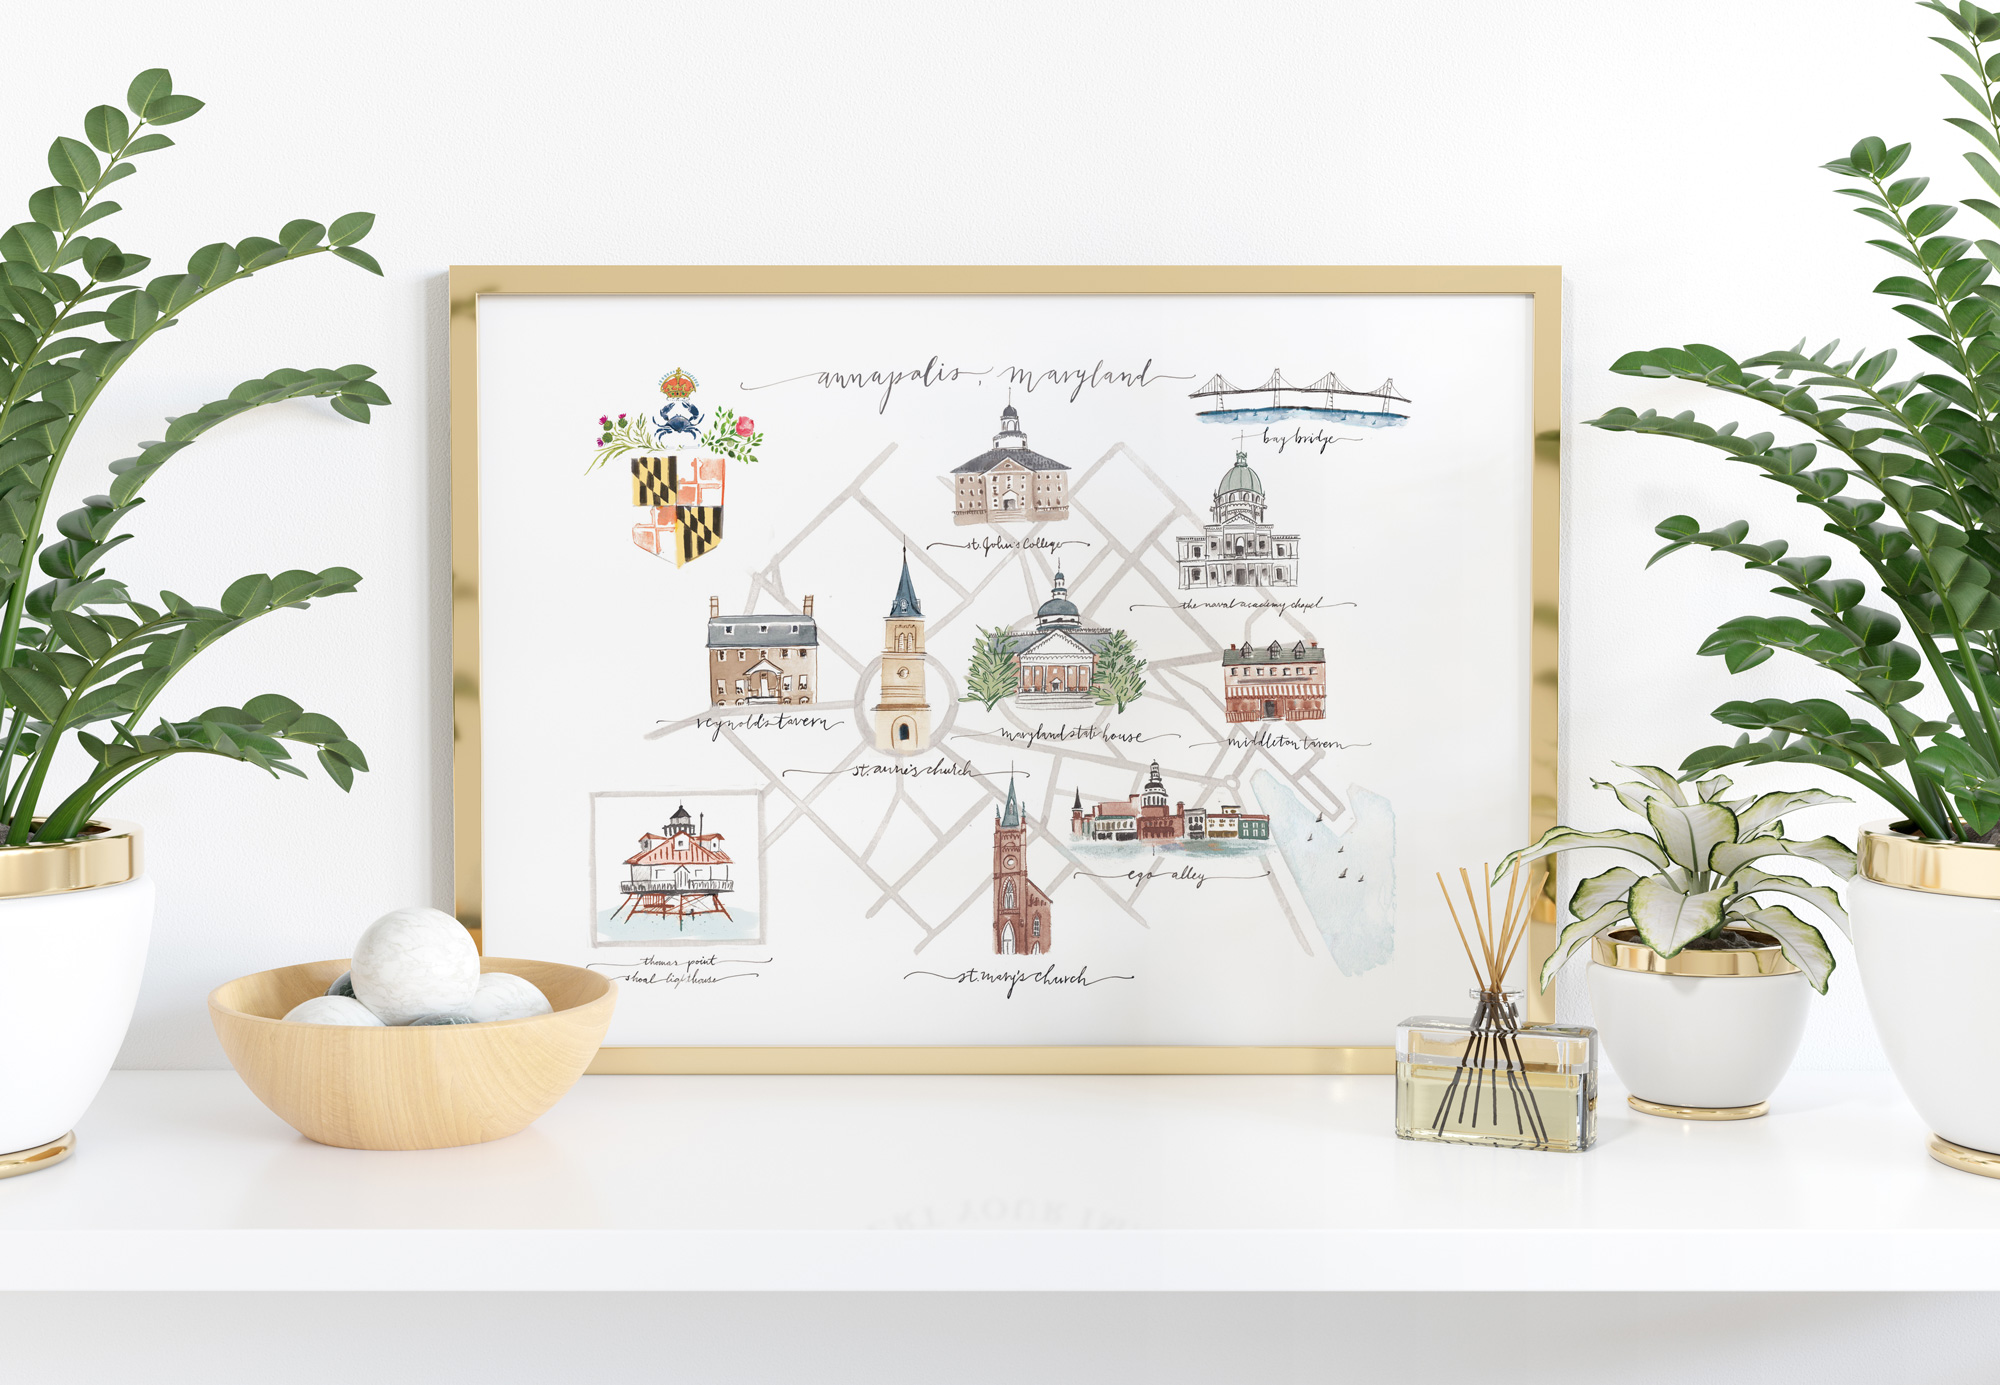 Annapolis, Maryland map by Jolly Edition